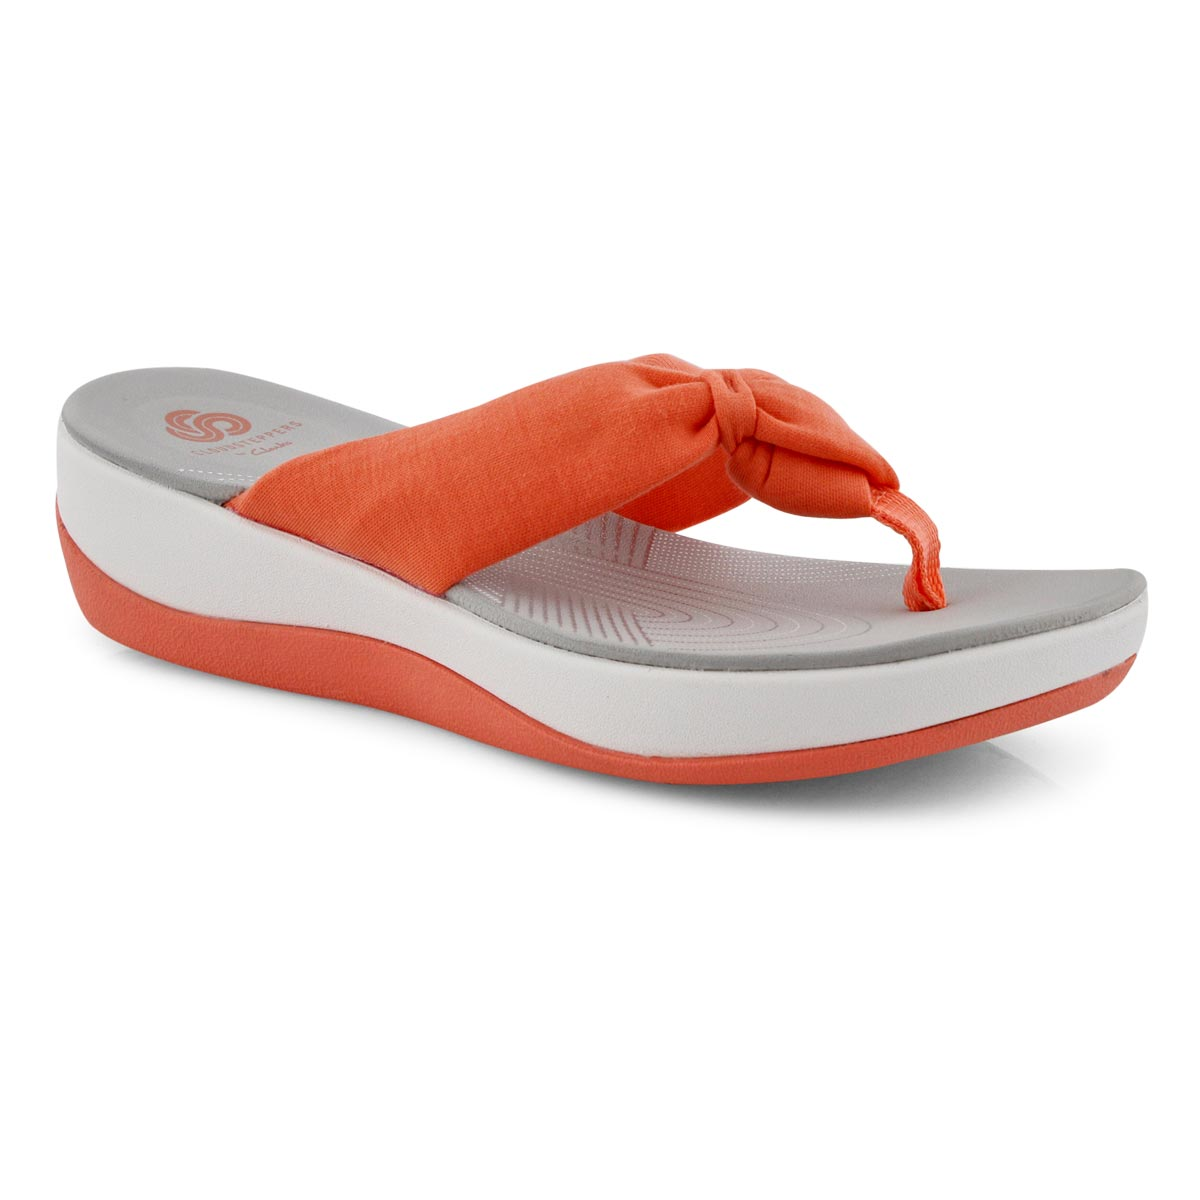 Lds Arla Glison coral thong wedge sandal